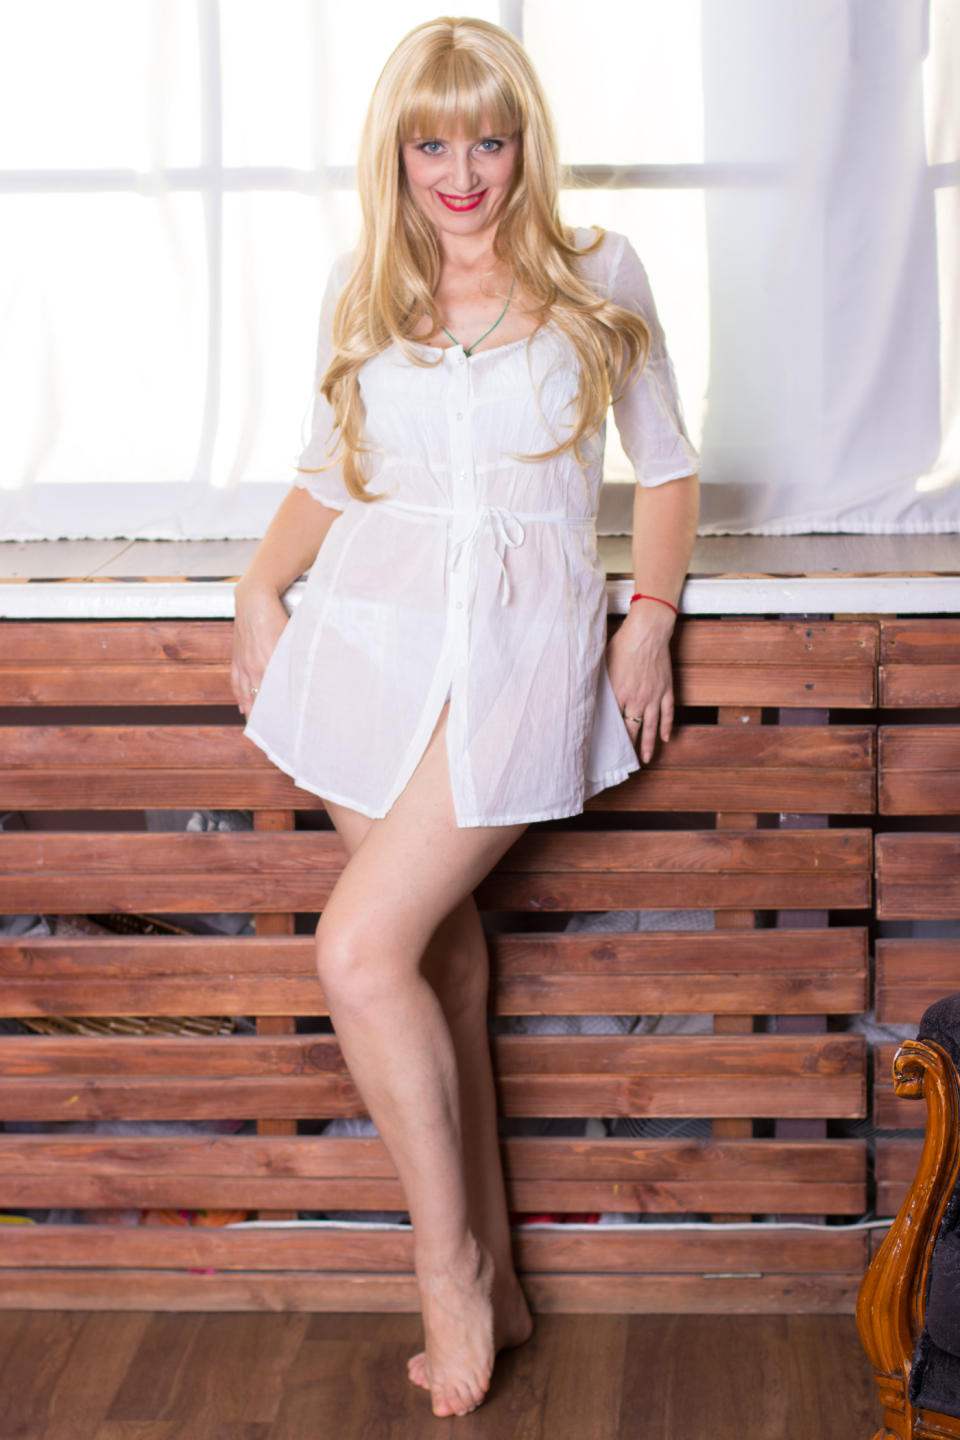 Live stream xXx with Smearina, this lean European shaved